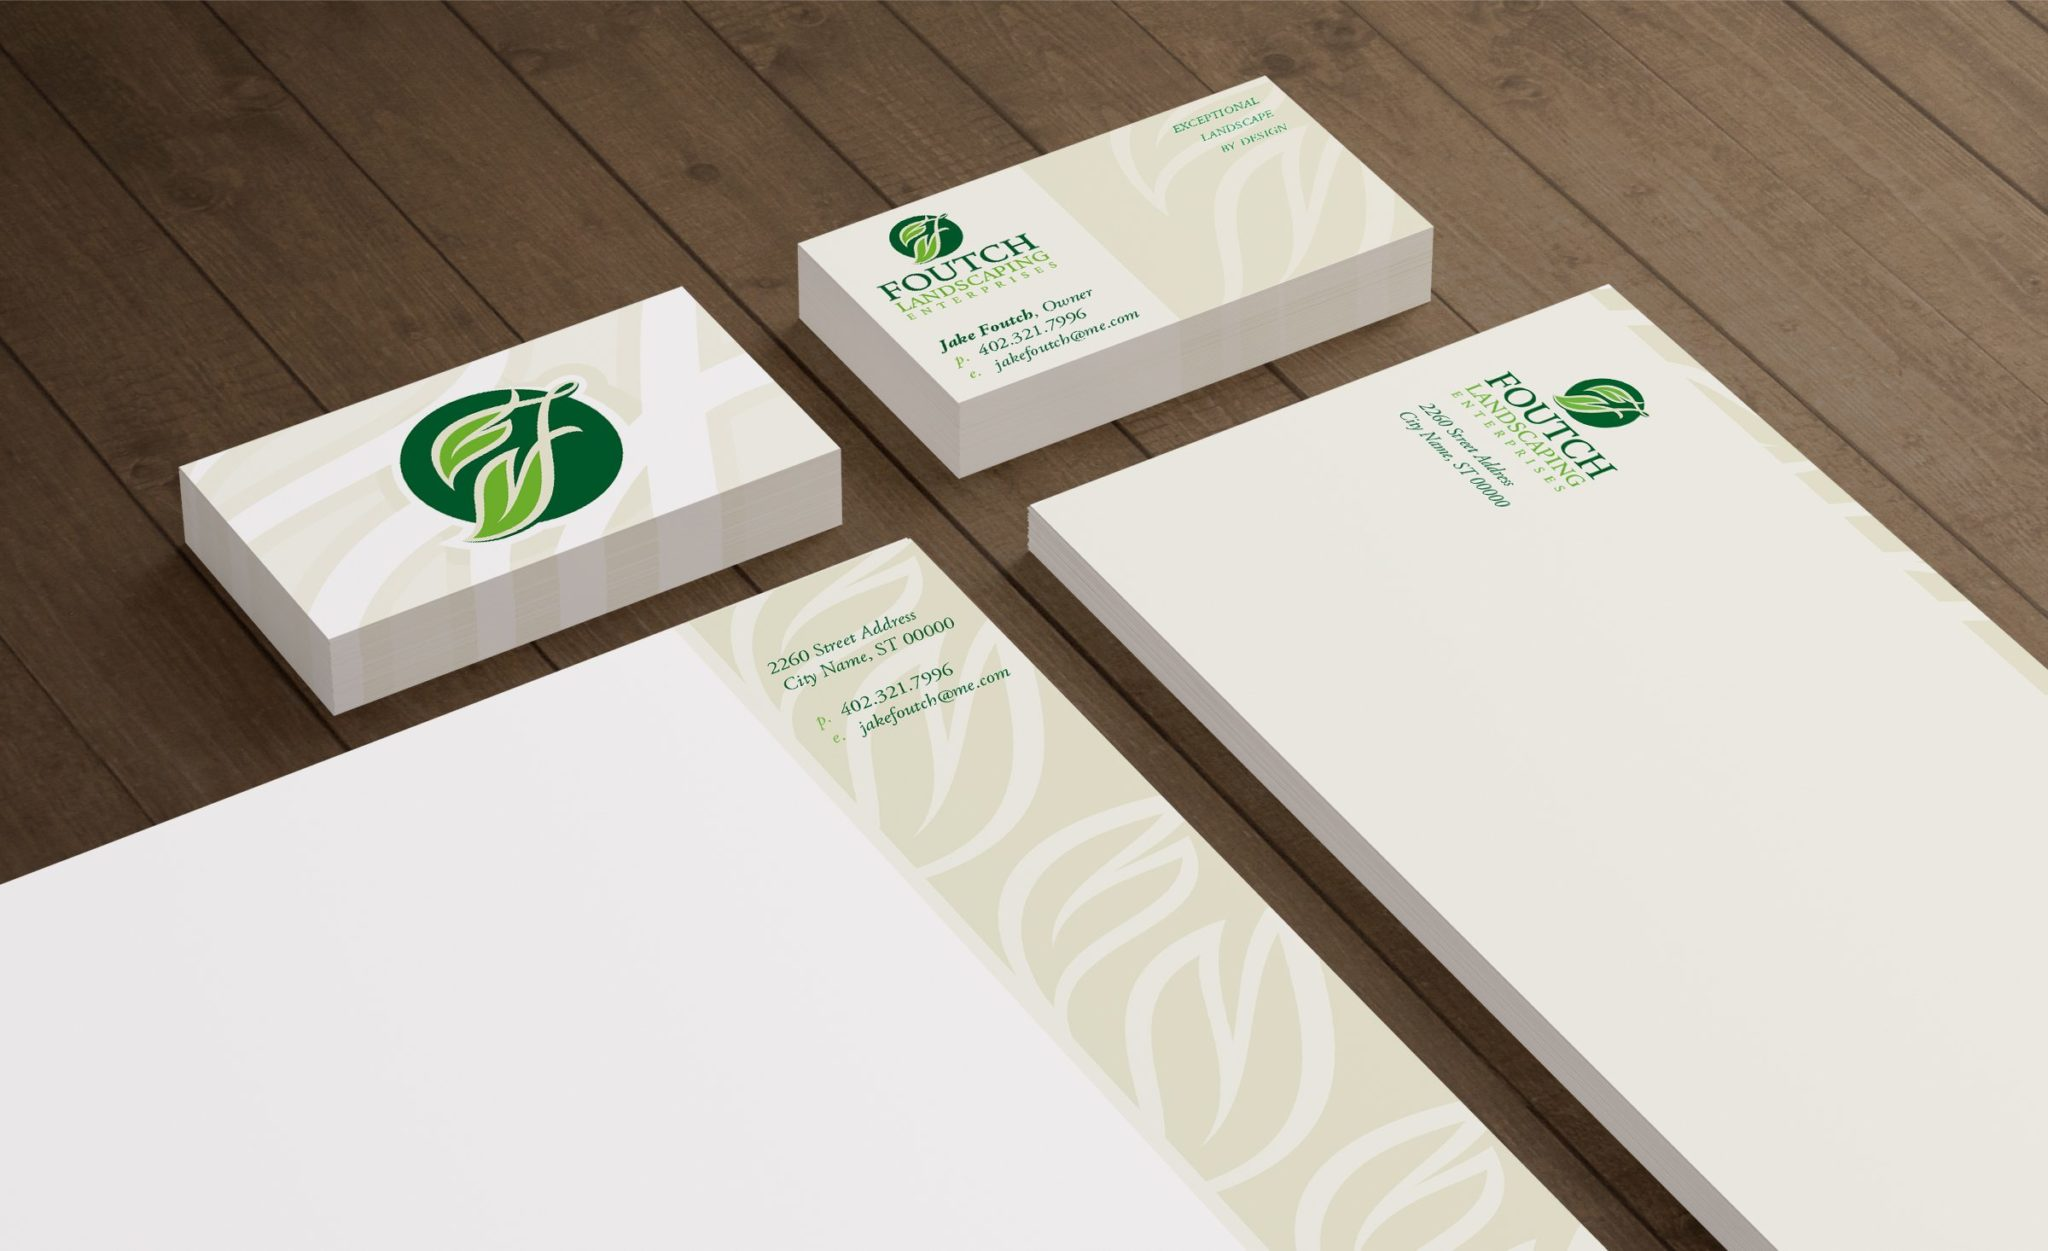 Stationery design for a landscaping company in Omaha, NE.